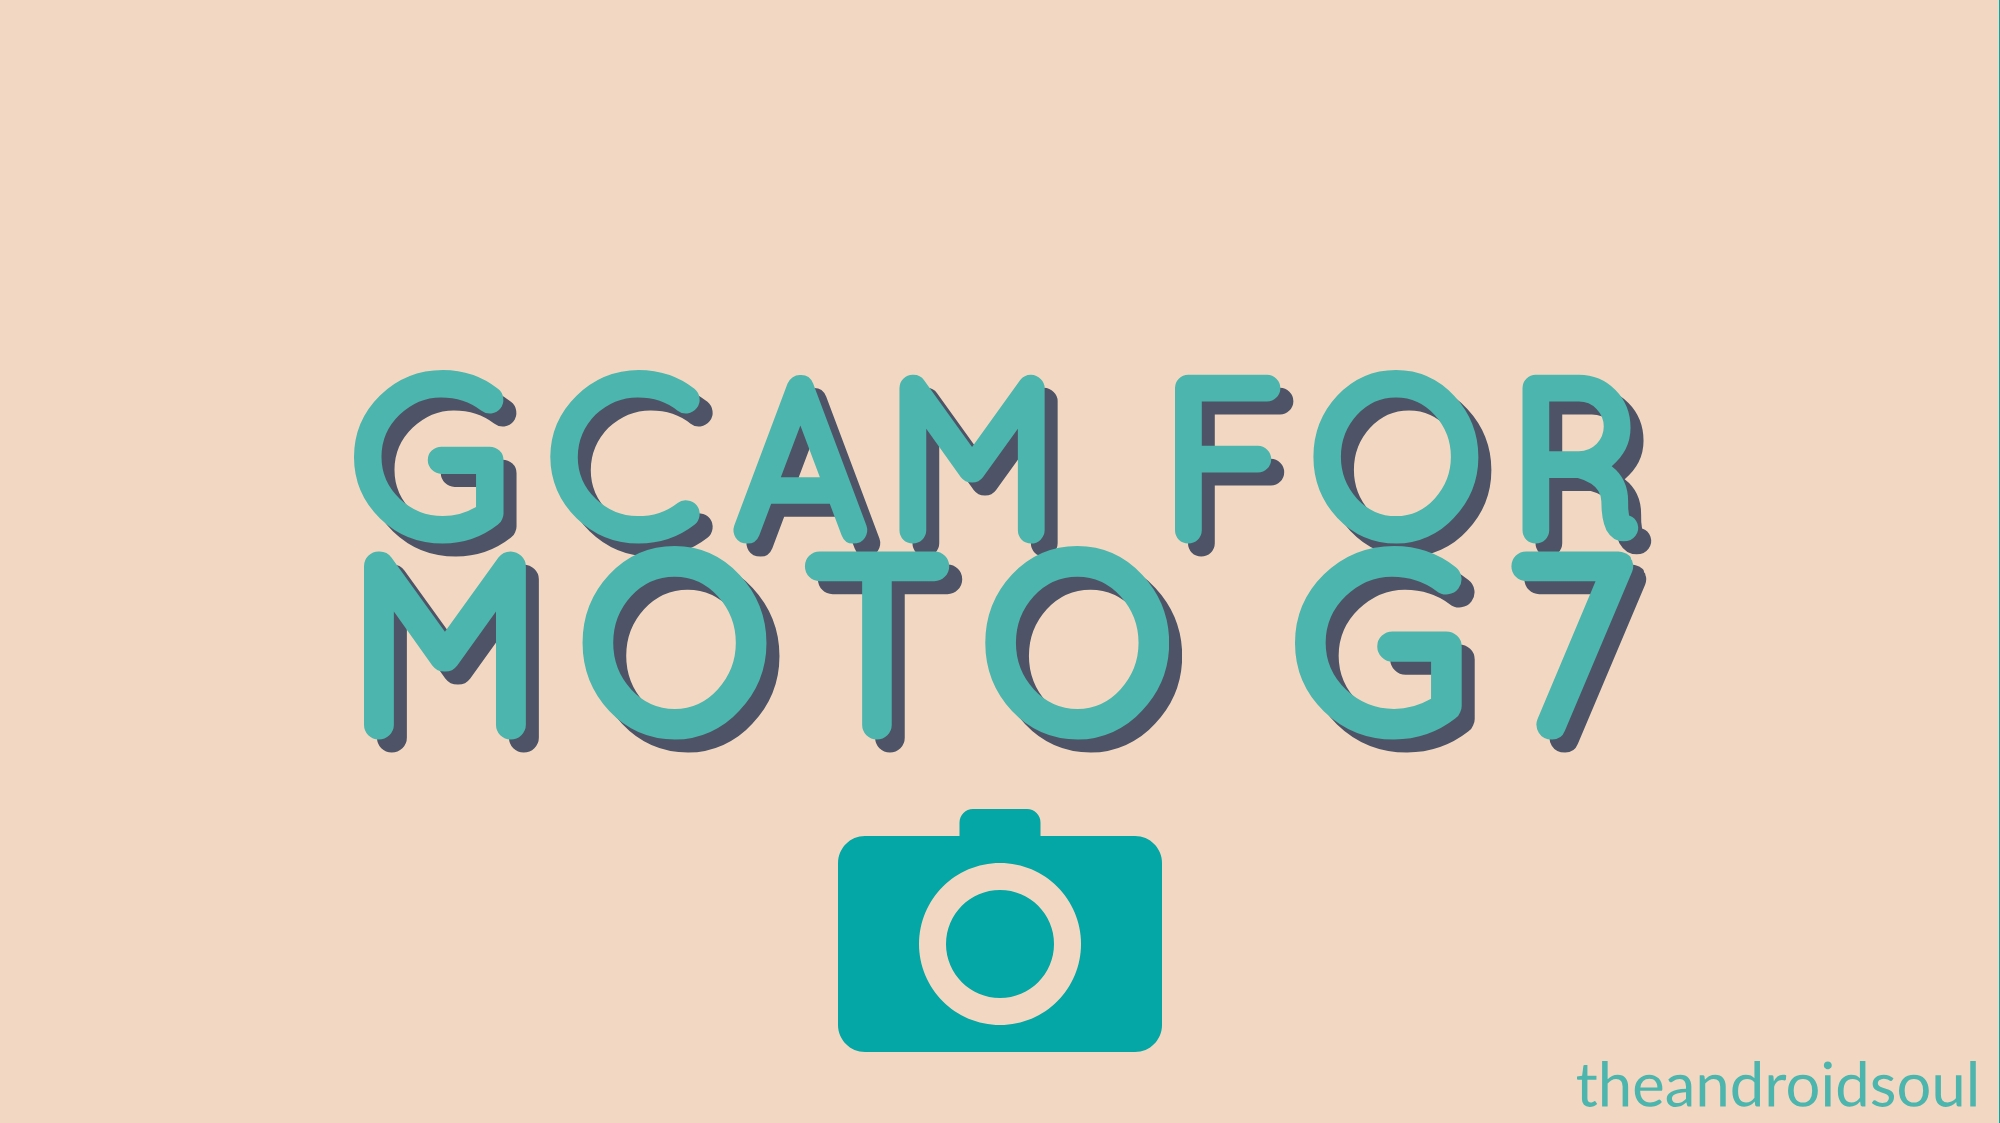 How to install Google Camera (Gcam) on Moto G7